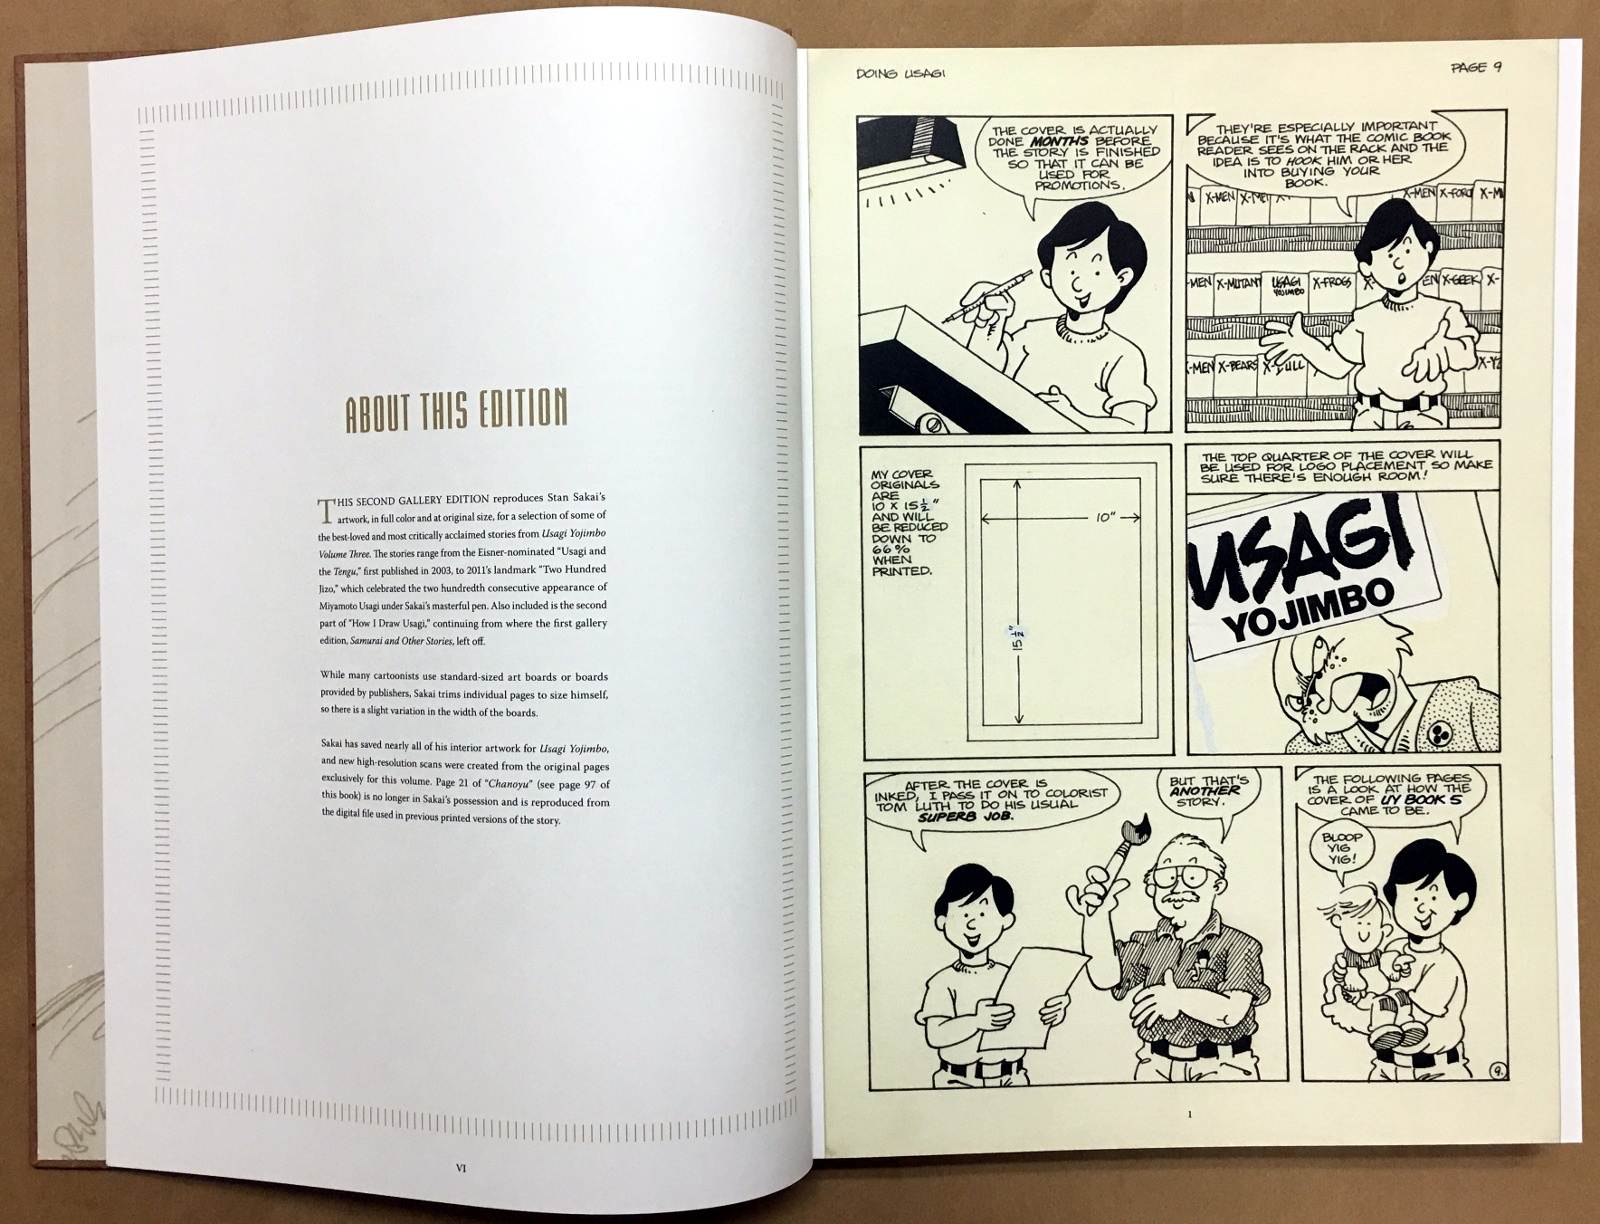 Usagi Yojimbo: The Artist and Other Stories Gallery Edition 8